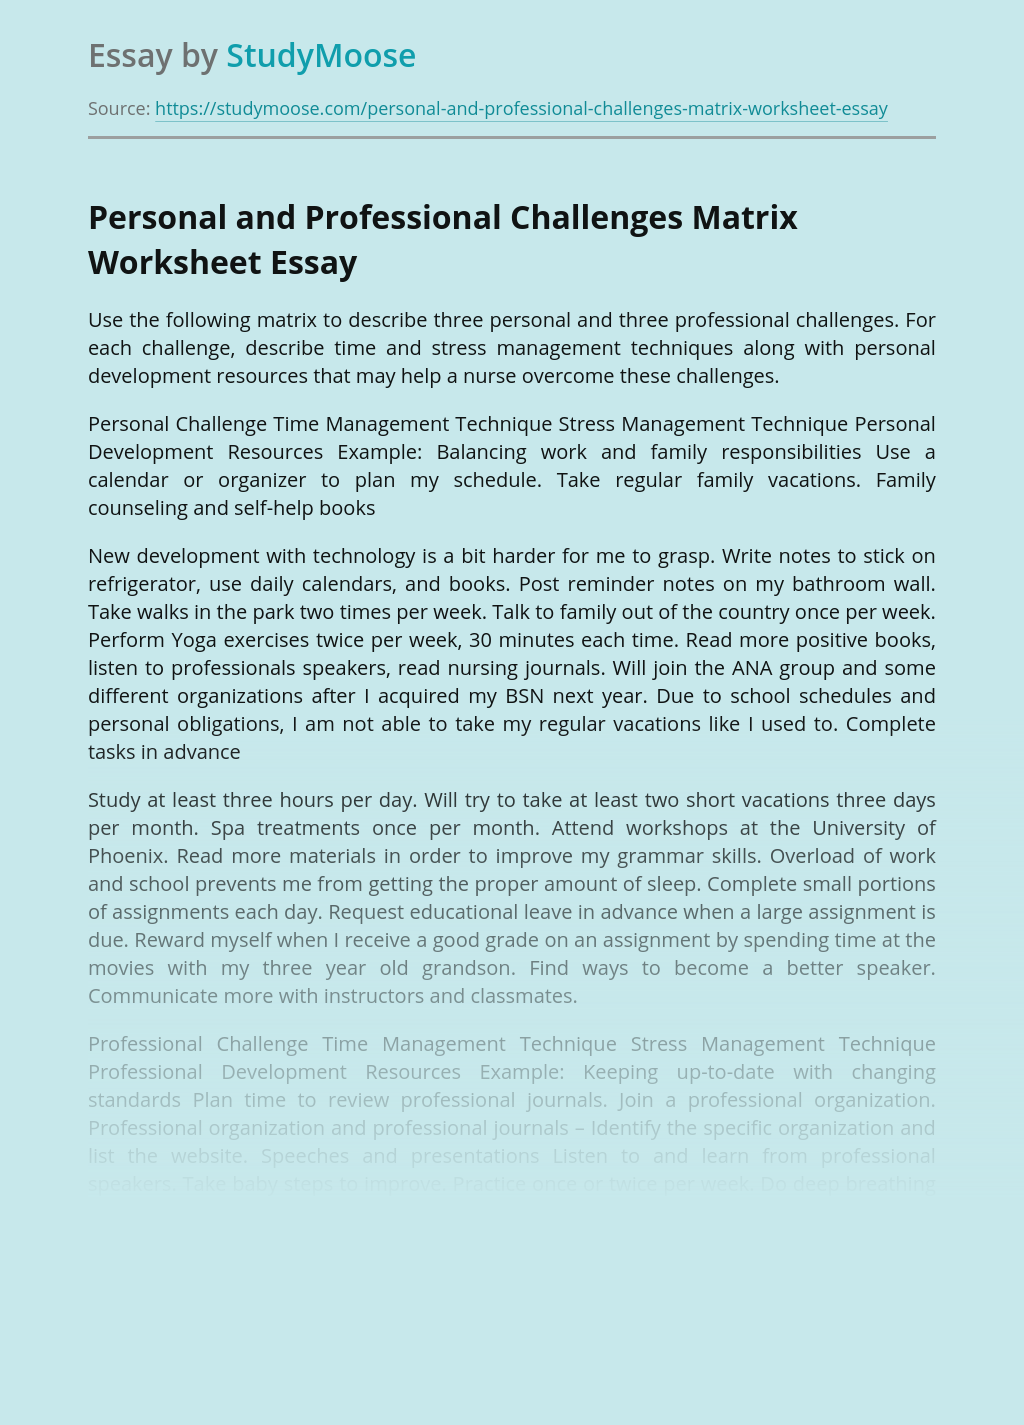 Personal and Professional Challenges Matrix Worksheet